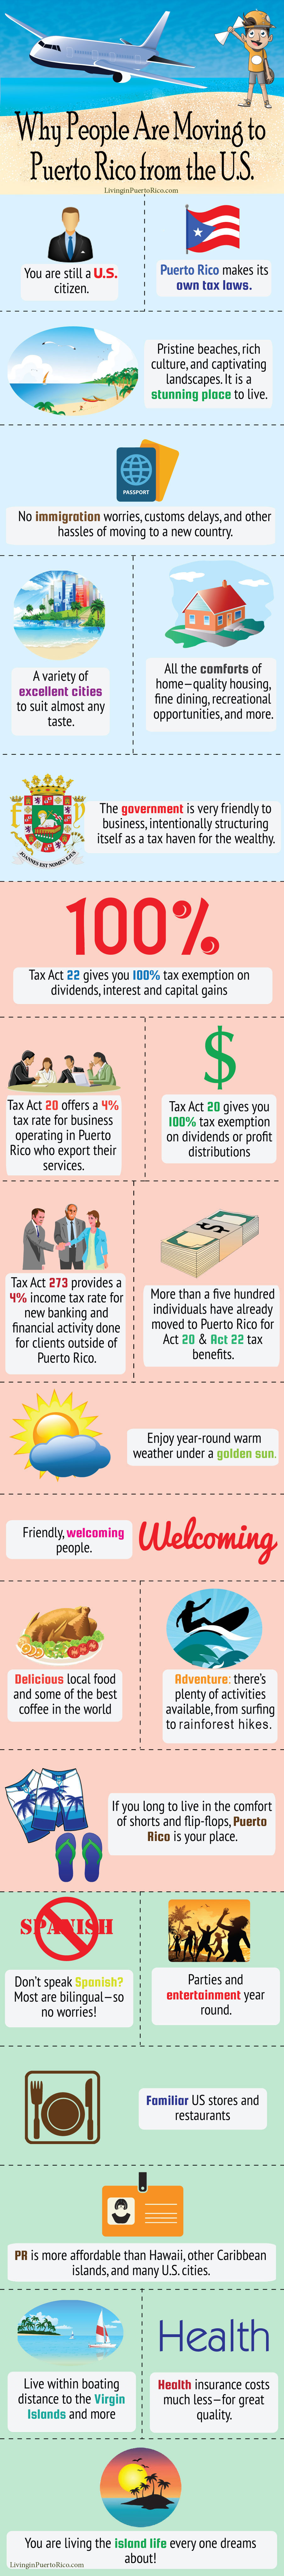 Why People Are Moving to Puerto Rico from the U.S. #infographic #puertorico